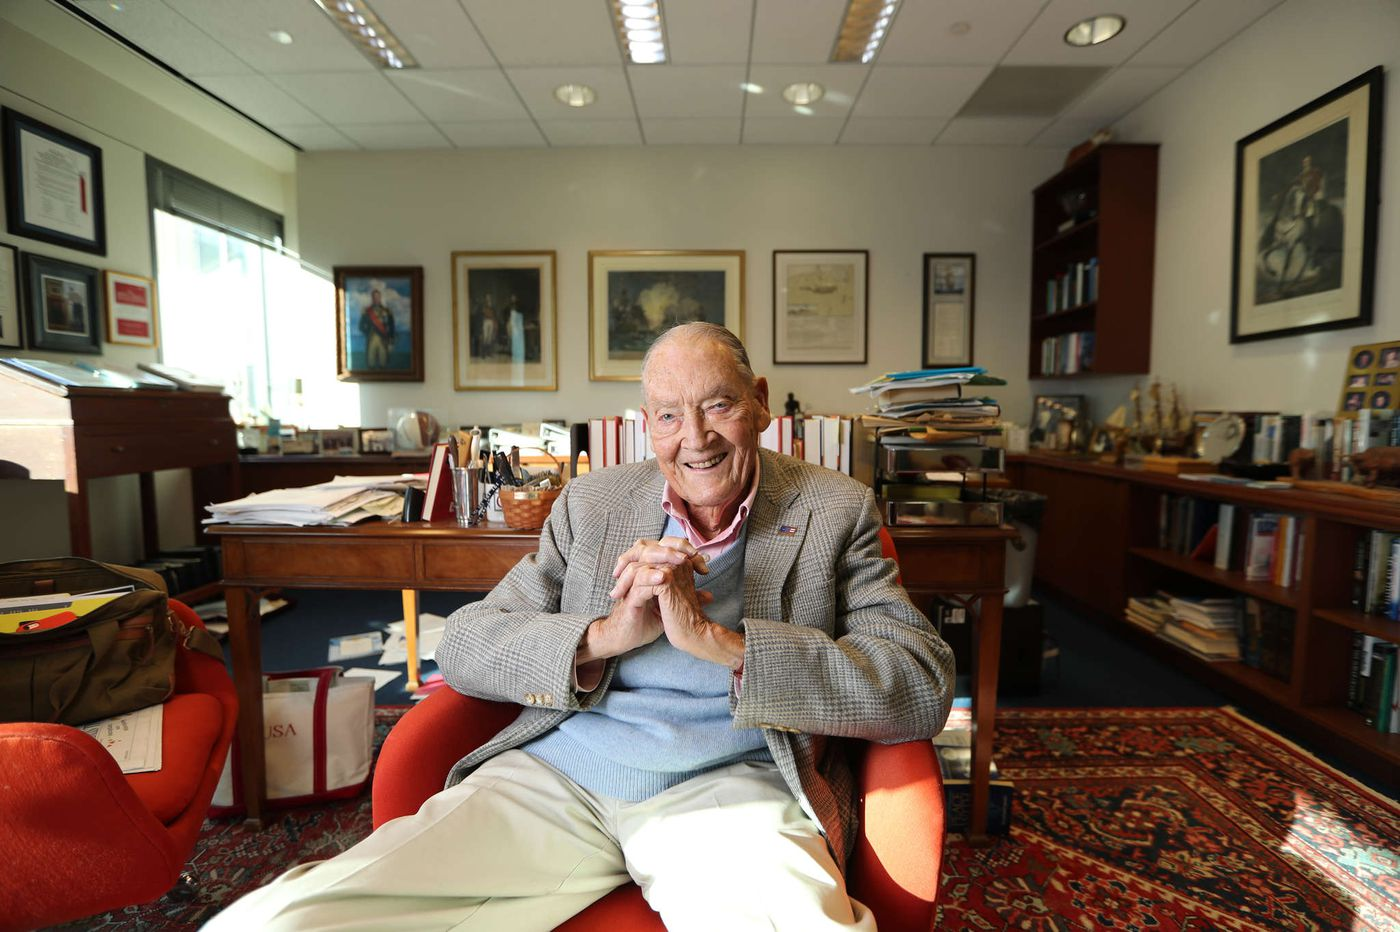 Jack Bogle Mourned by His Biggest Fans, the 'Bogleheads'